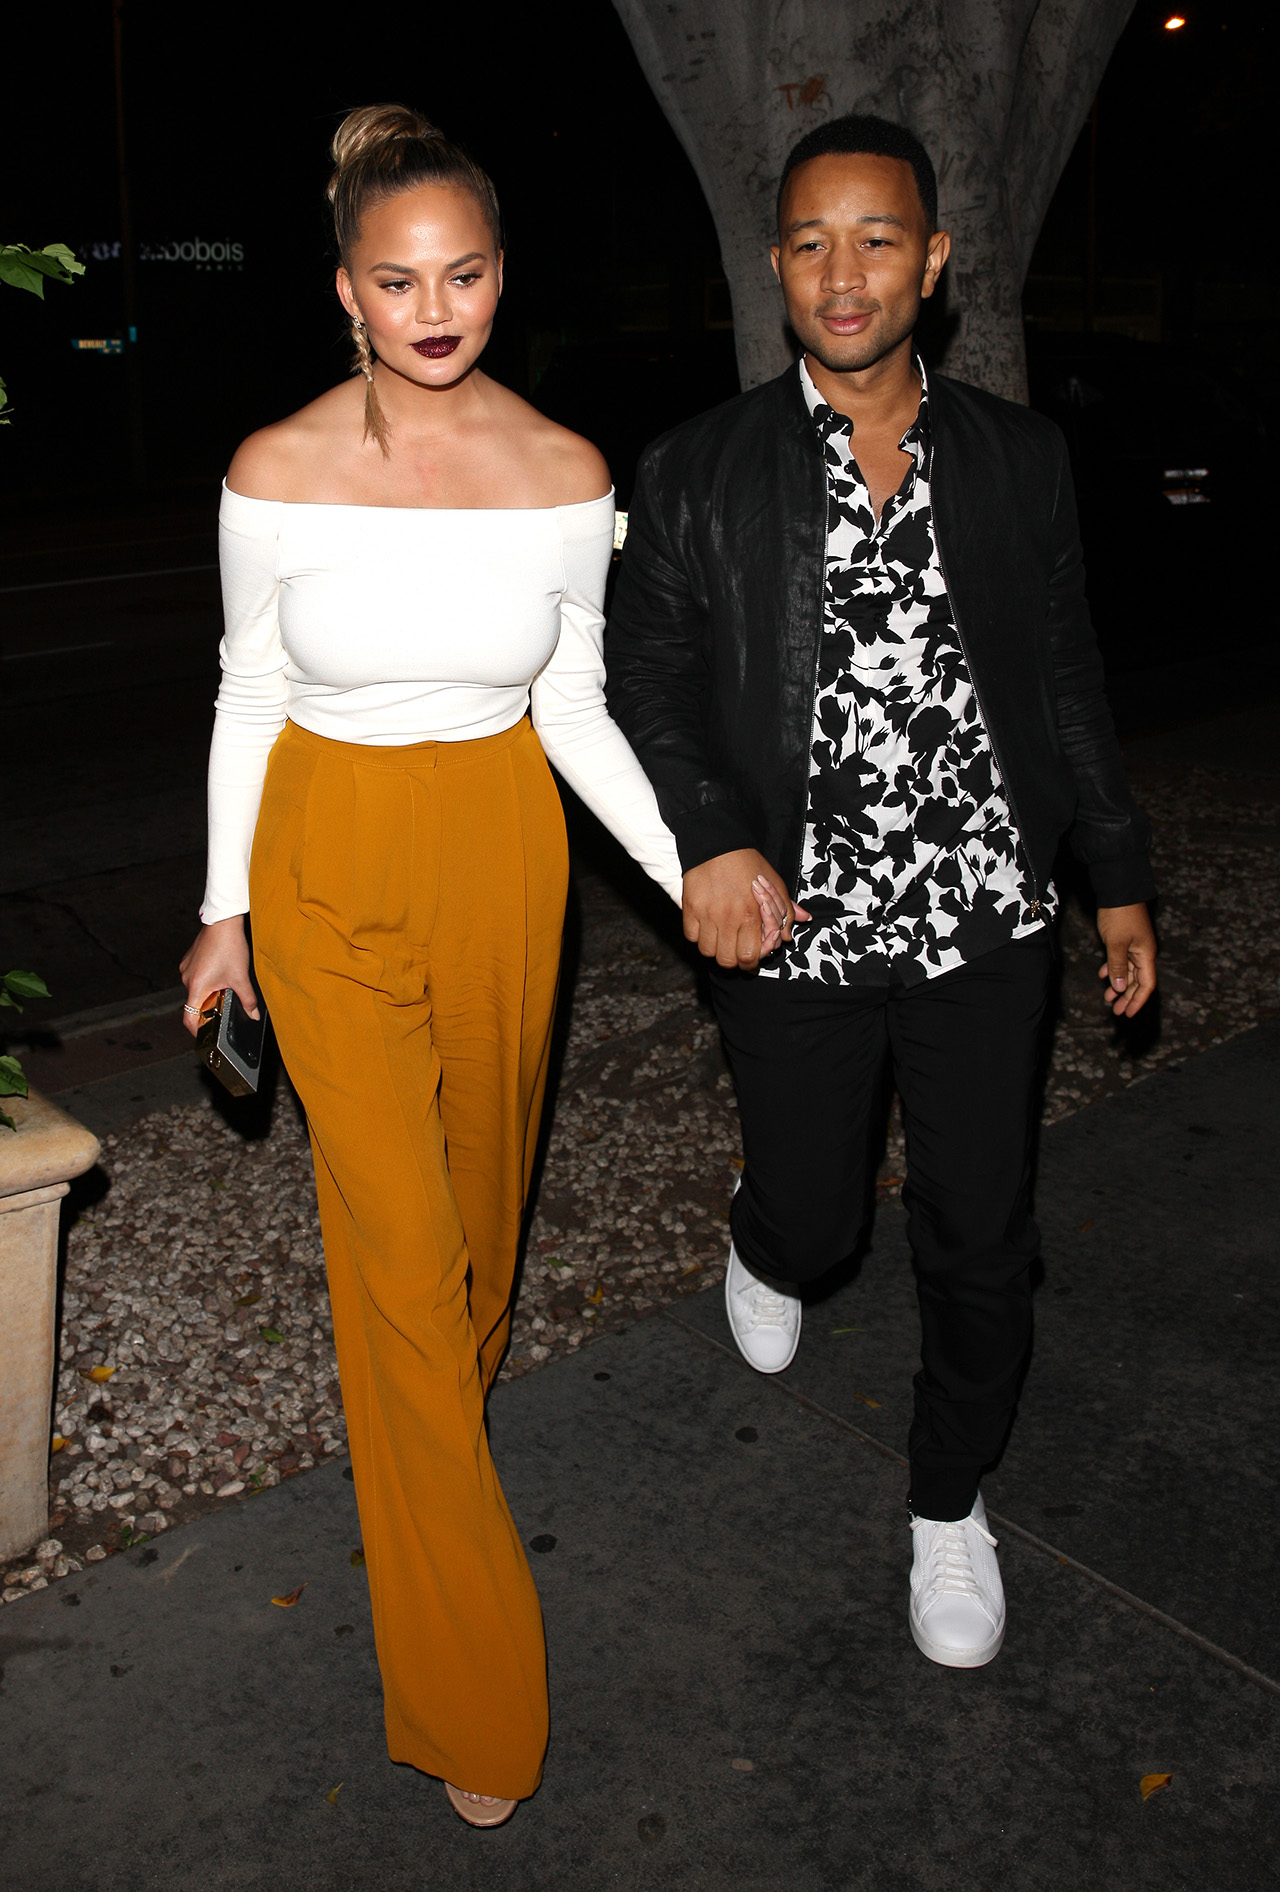 EXCLUSIVE: Chrissy Teigen and John Legend dine at Madeo Restaurant for a romantic dinner in West Hollywood. Pictured: Chrissy Teigen And John Legend Ref: SPL1338986 220816 EXCLUSIVE Picture by: Photographer Group / Splash News Splash News and Pictures Los Angeles:310-821-2666 New York:212-619-2666 London:870-934-2666 photodesk@splashnews.com